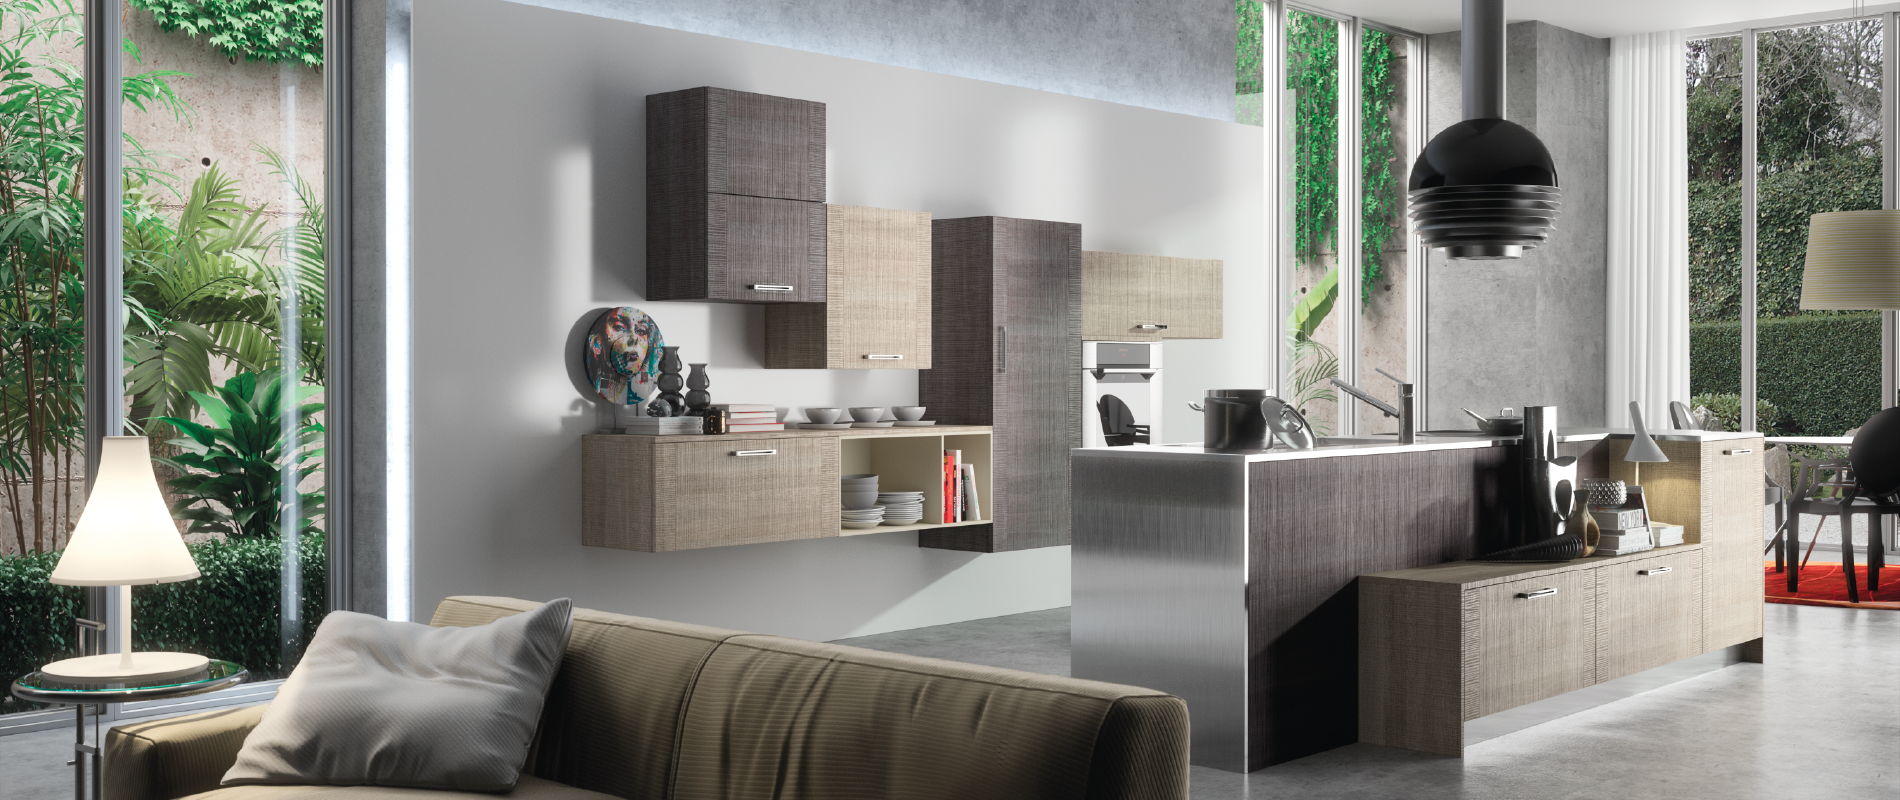 belle cuisine contemporaine emma sur mesure design haut de gamme quip e. Black Bedroom Furniture Sets. Home Design Ideas